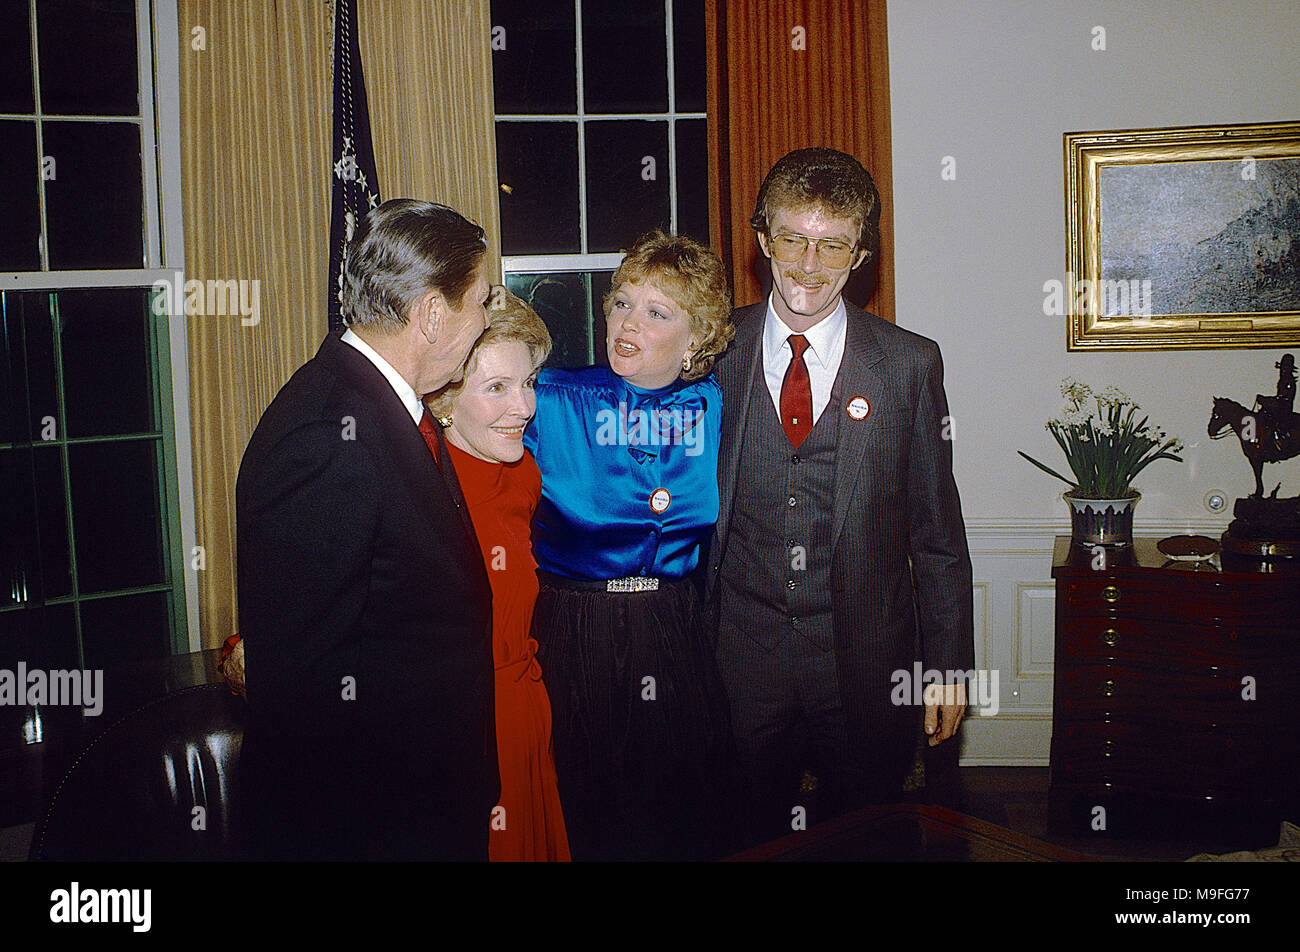 Washington, DC., USA, January 29, 1984 President Ronald Reagan with his wife Nancy and daughter Maureen and son-in-law Dennis Revell after he made his announcement on national television for re-election from  the Oval Office of the White House Credit: Mark Reinstein/MediaPunch - Stock Image